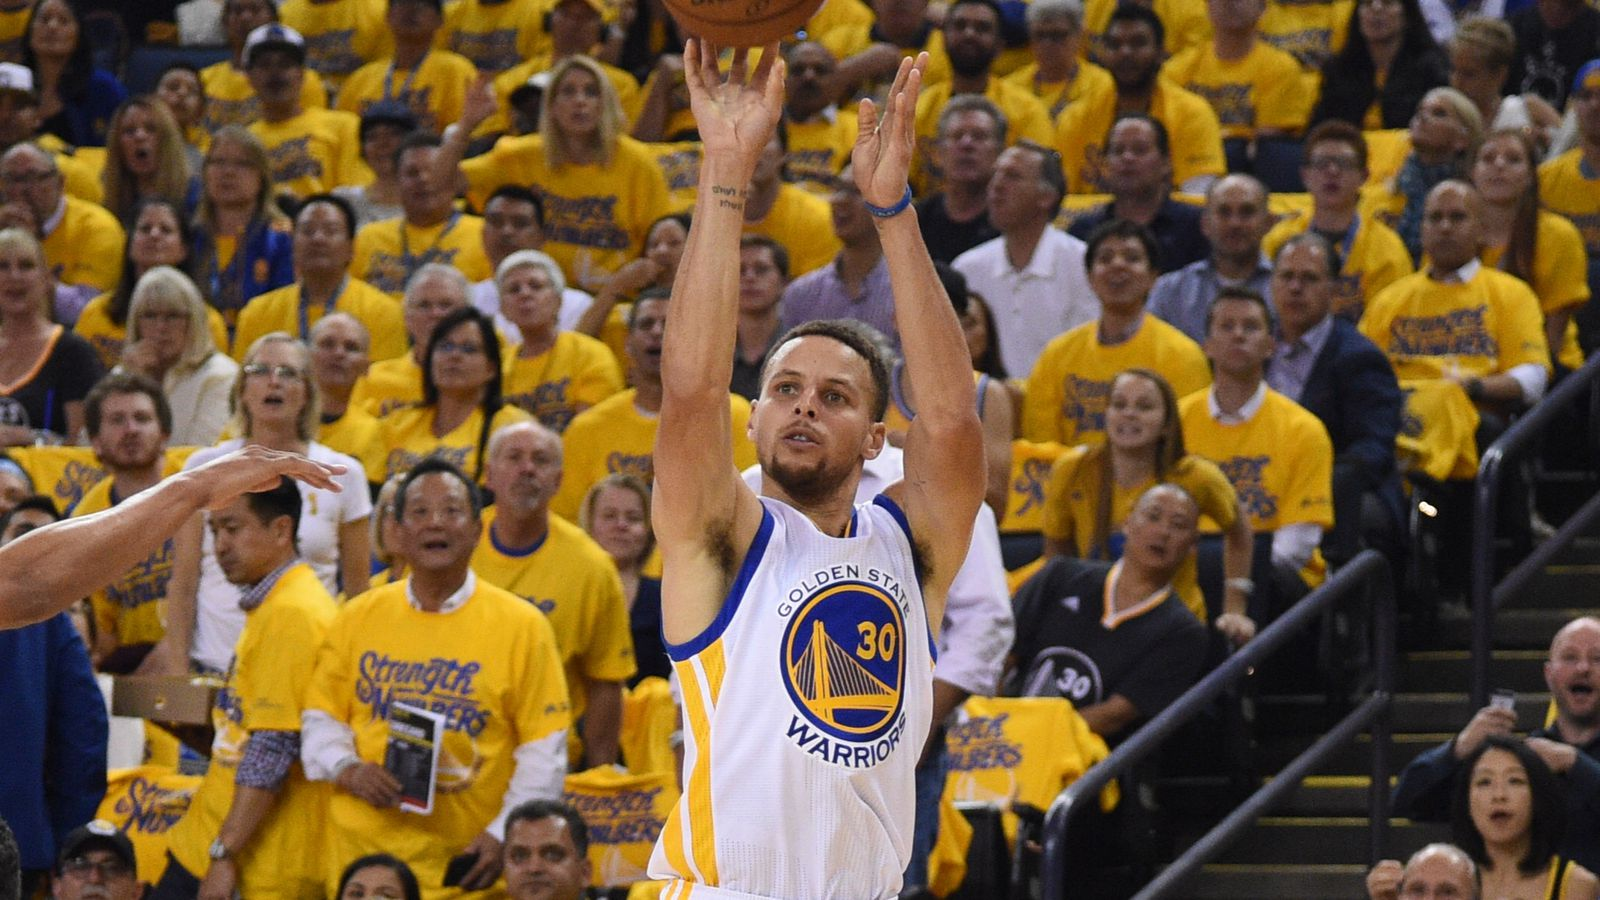 Vs thunder game 1 halftime score stephen curry s buzzer beating